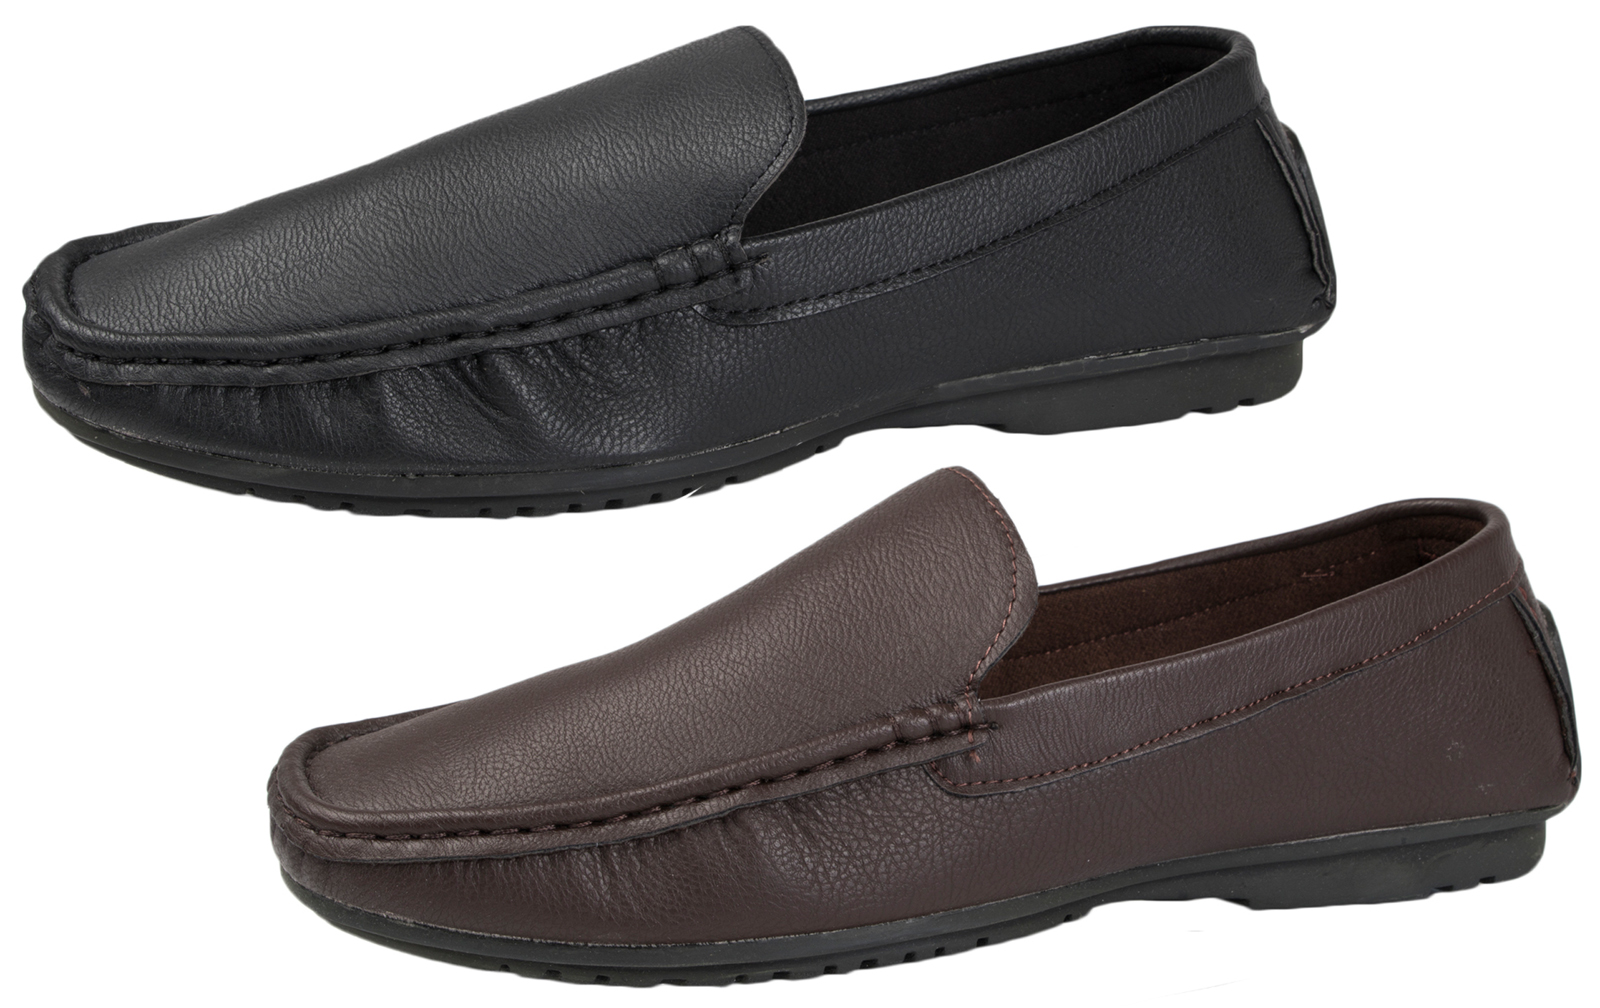 3fc30e10dc4 NEW MENS COMFORT LEATHER LINED MOCCASINS MULES FLEXIBLE SOLE SHOES SLIP ONS  6-11